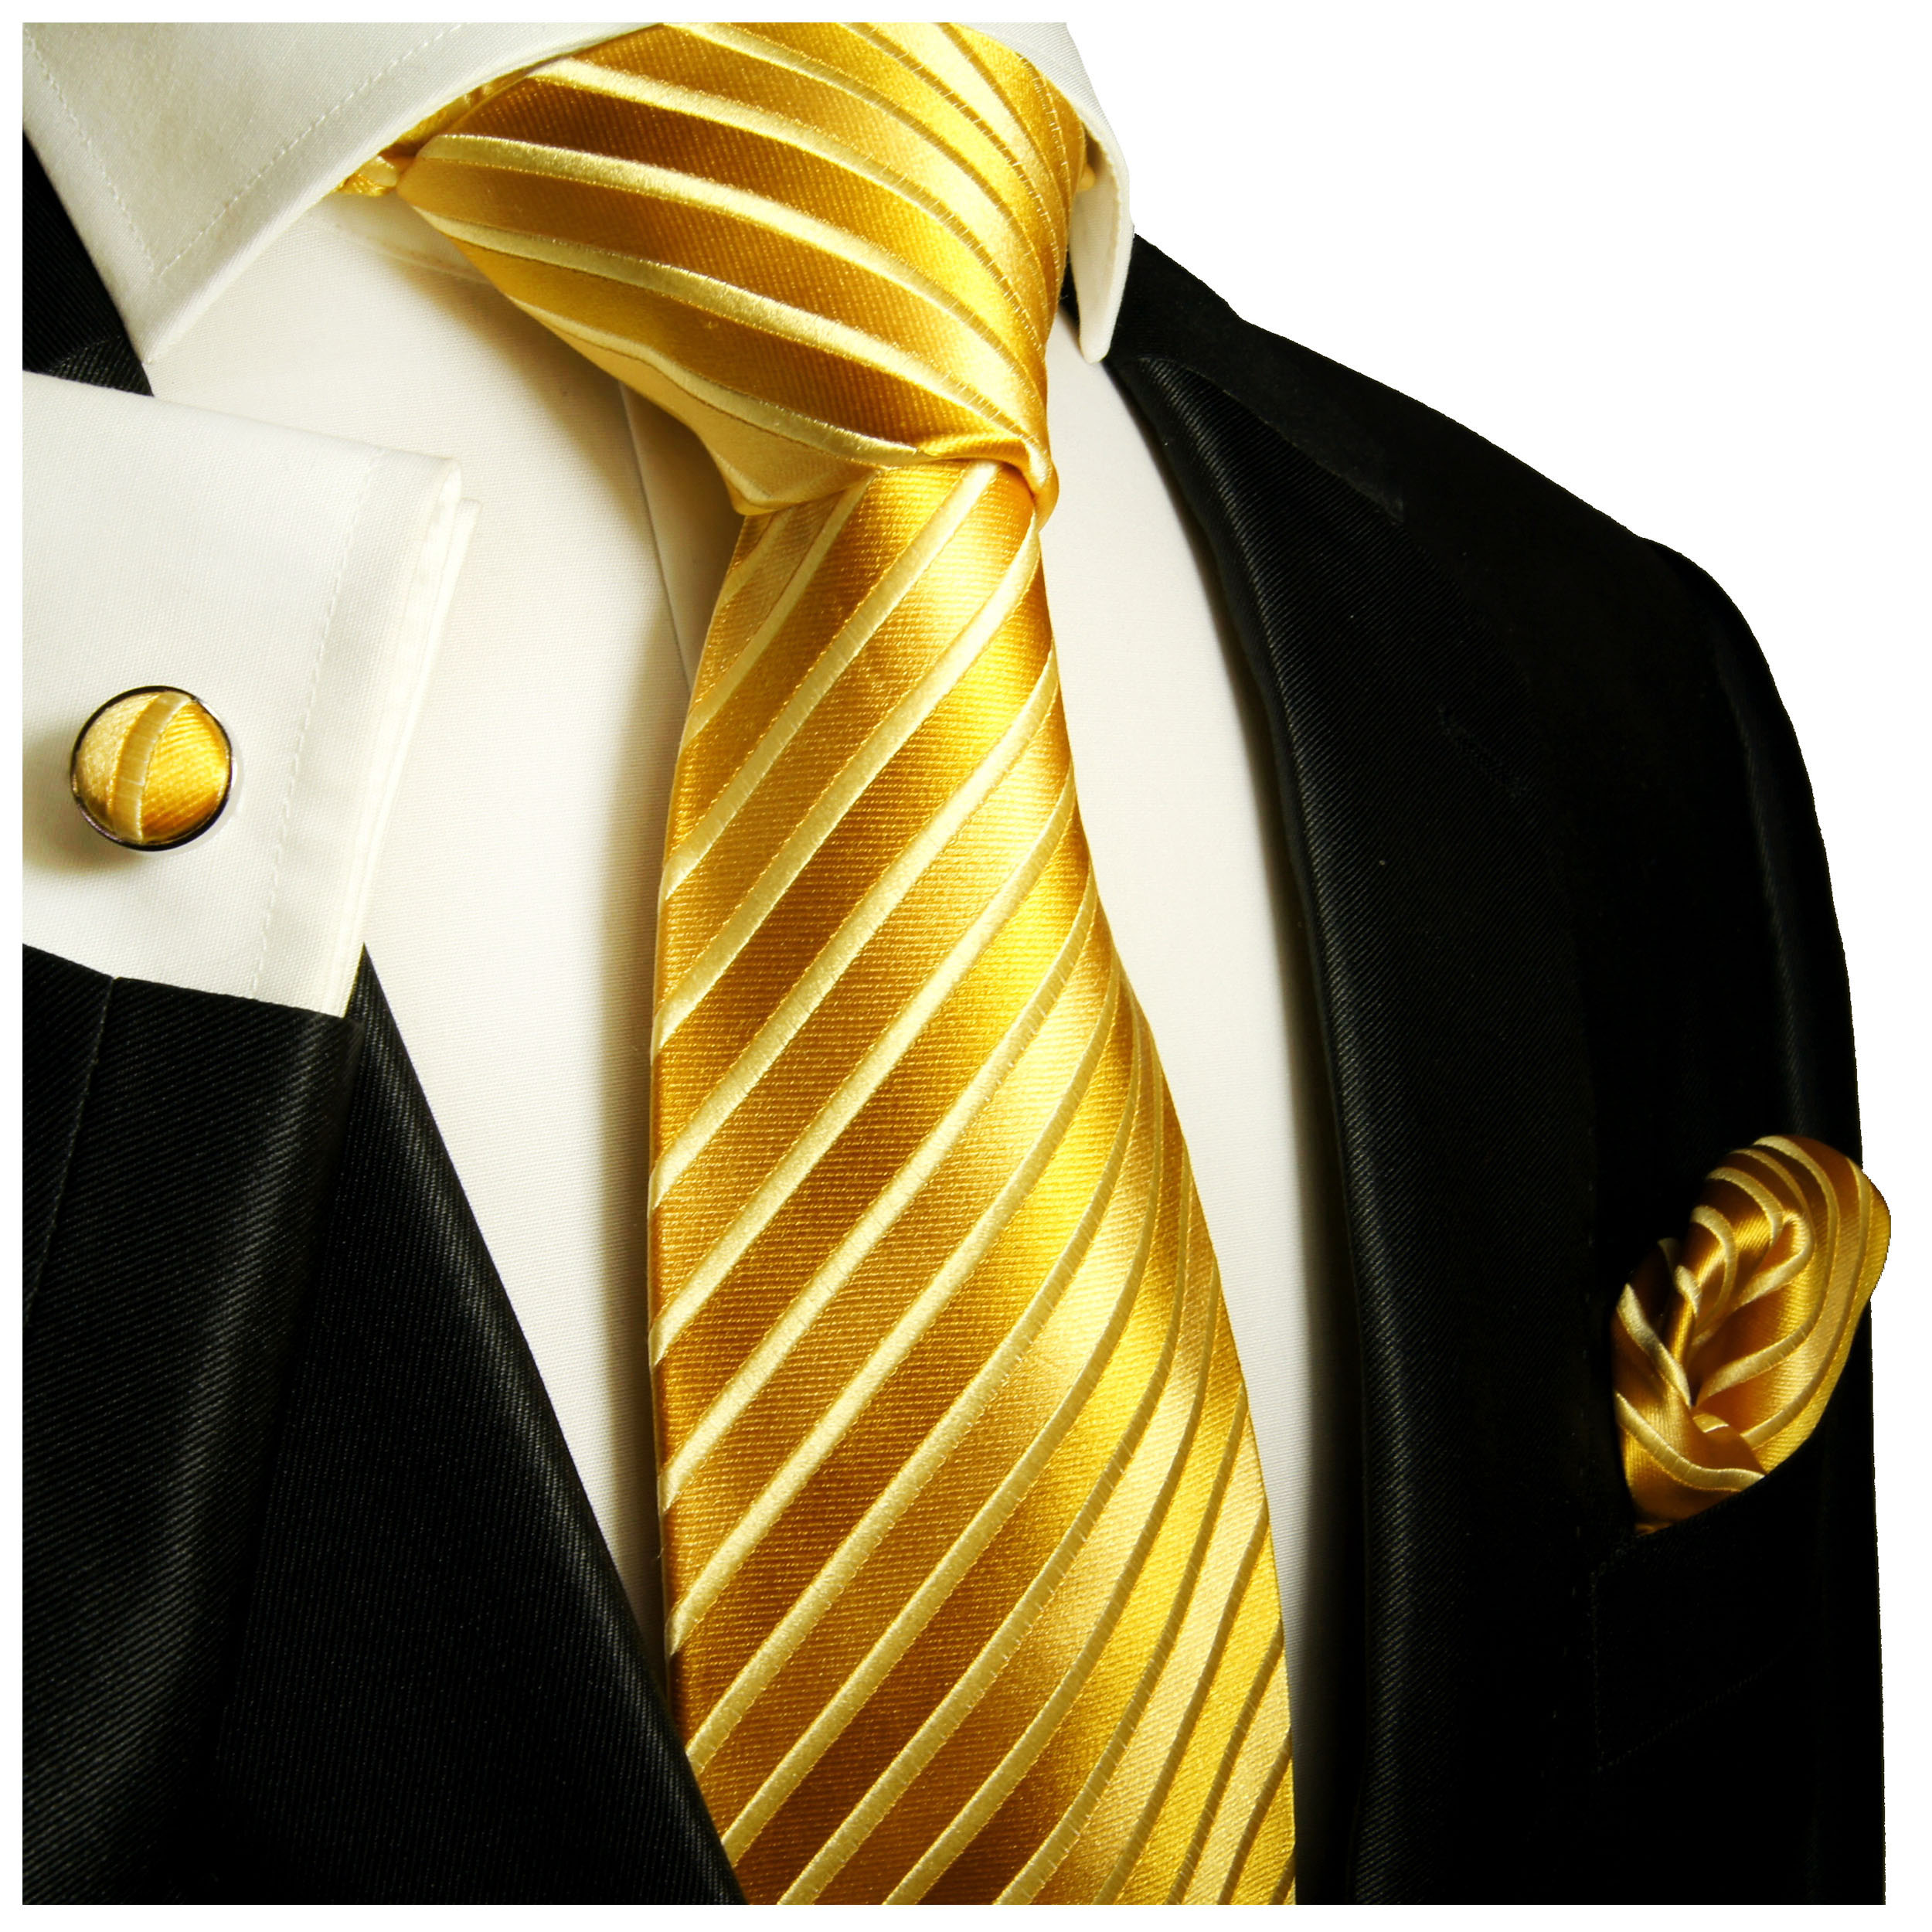 8d9f360ec1a3 Gold extra long XL necktie Set 3pcs. 100% silk mens tie 953 - Paul Malone  Shop